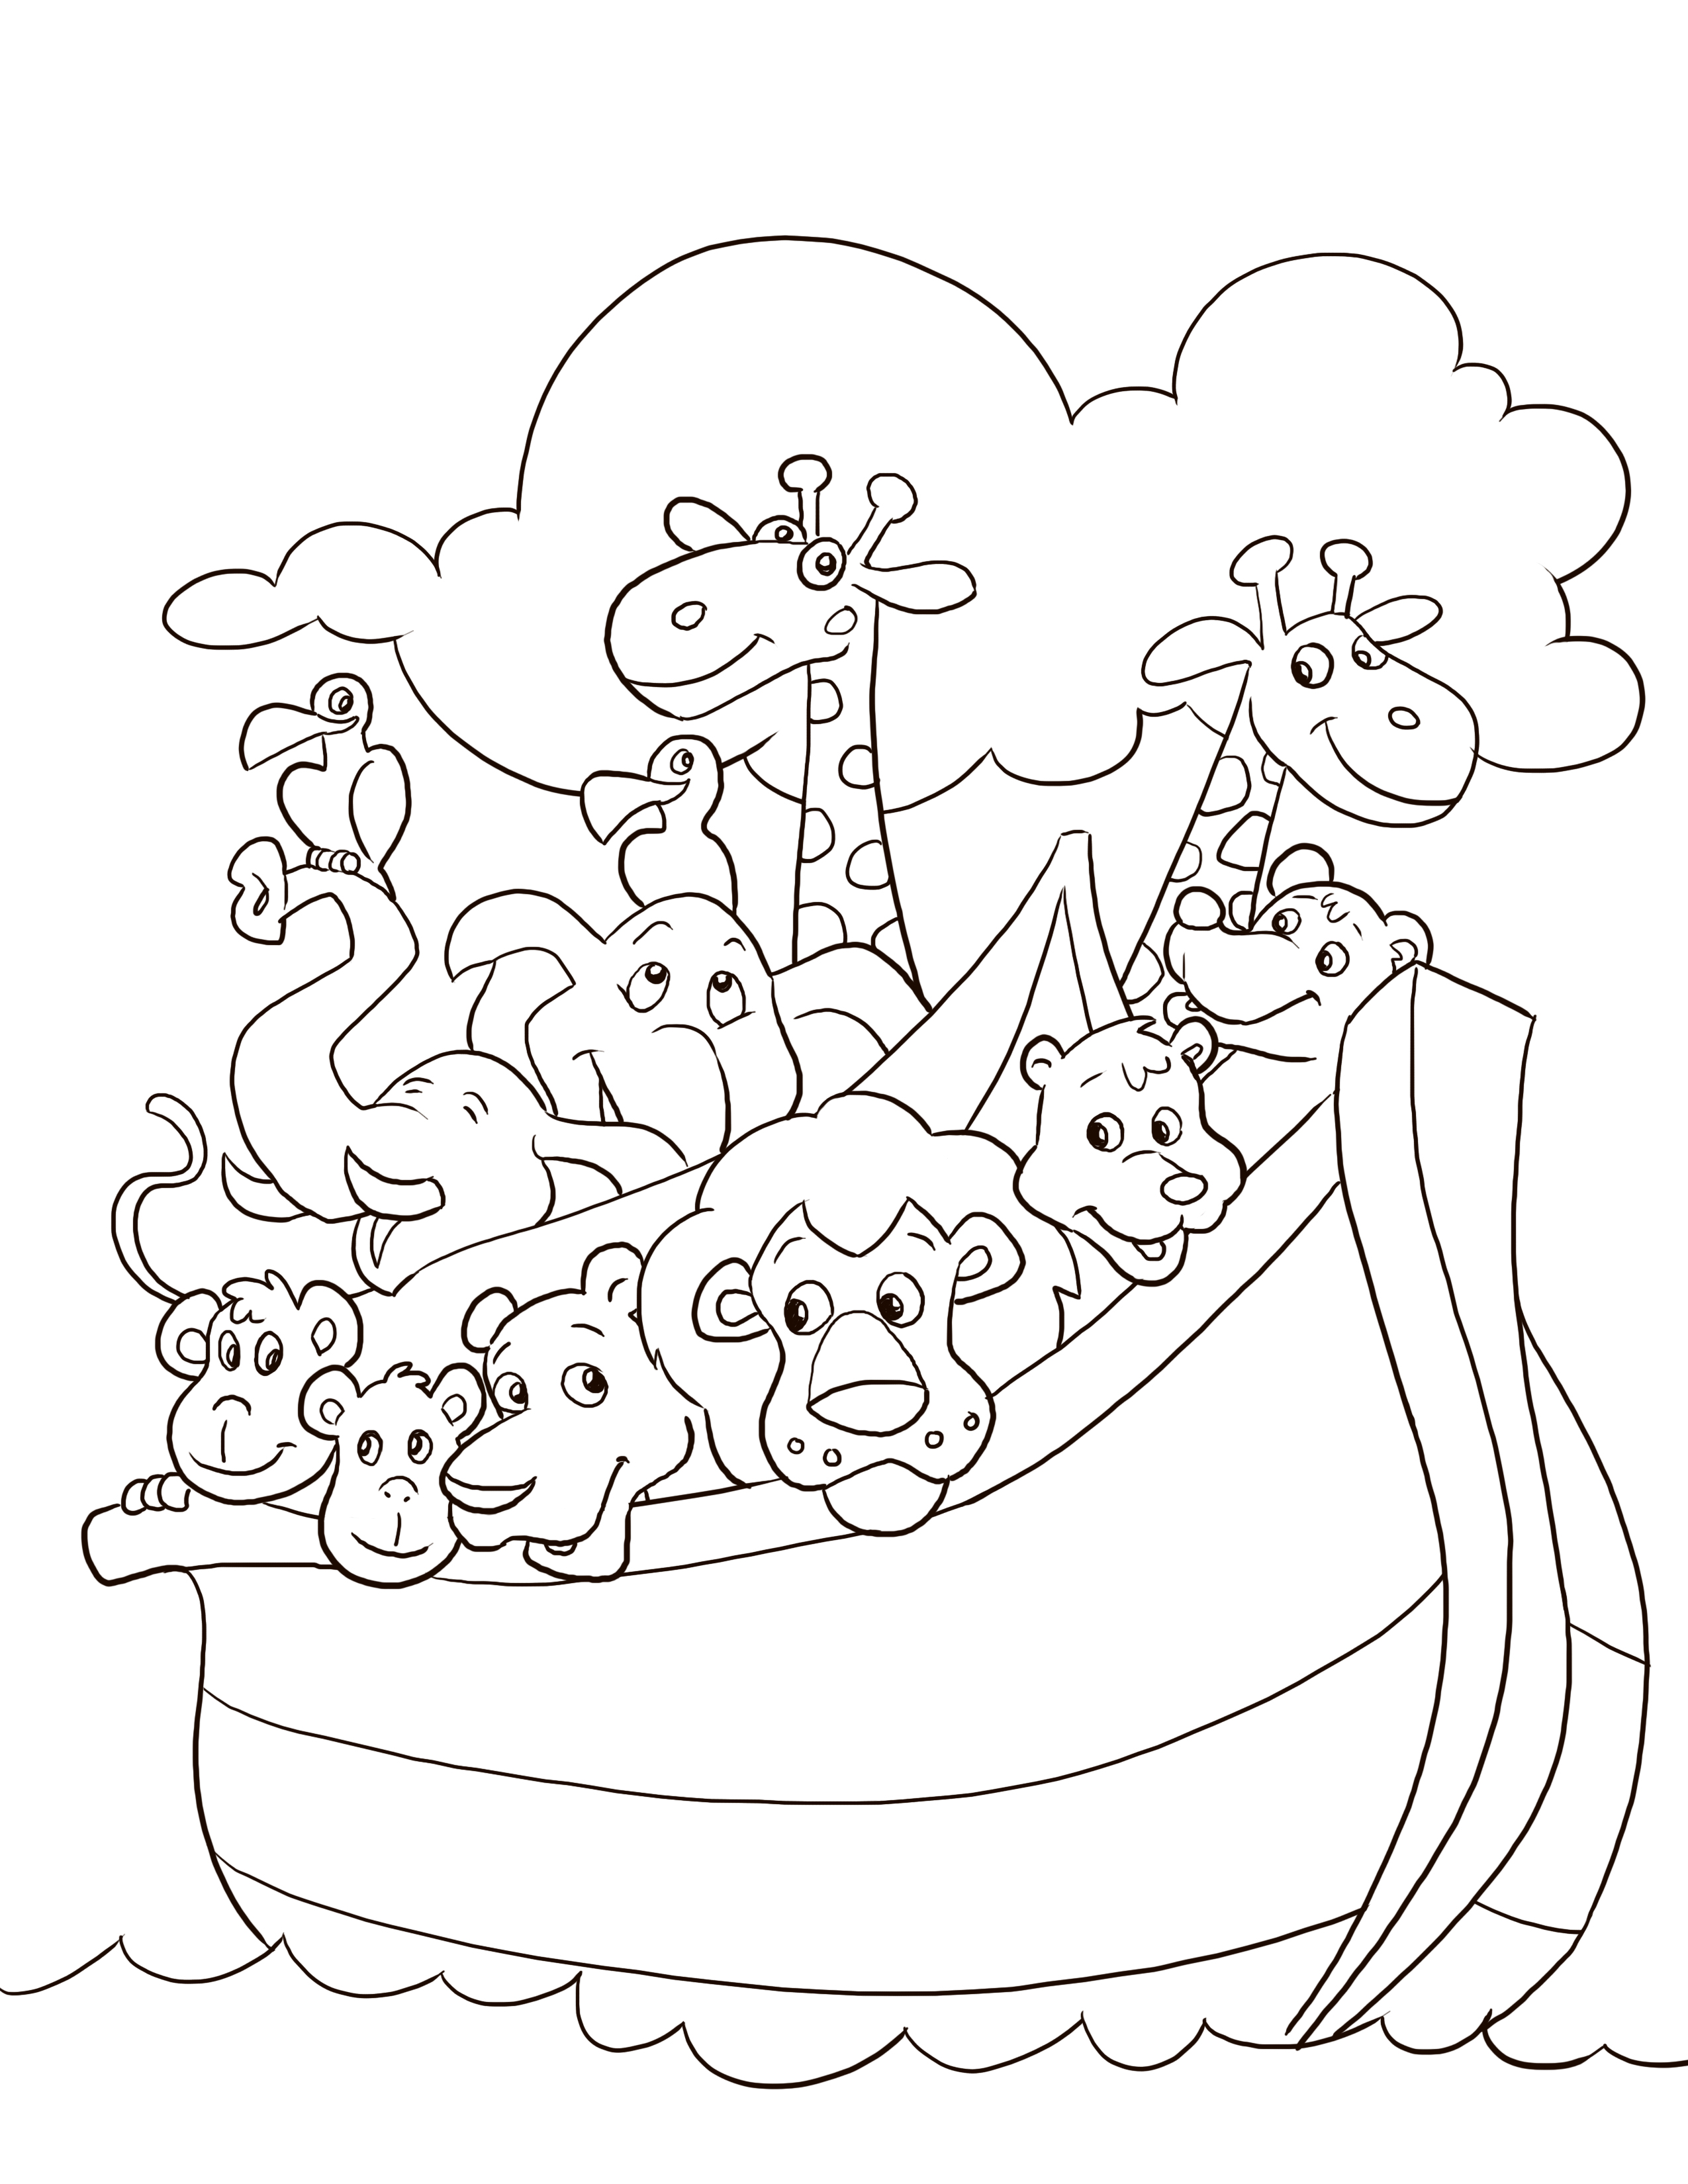 2550x3300 Top Free Printable Bible Verse Coloring Pages Online Kids